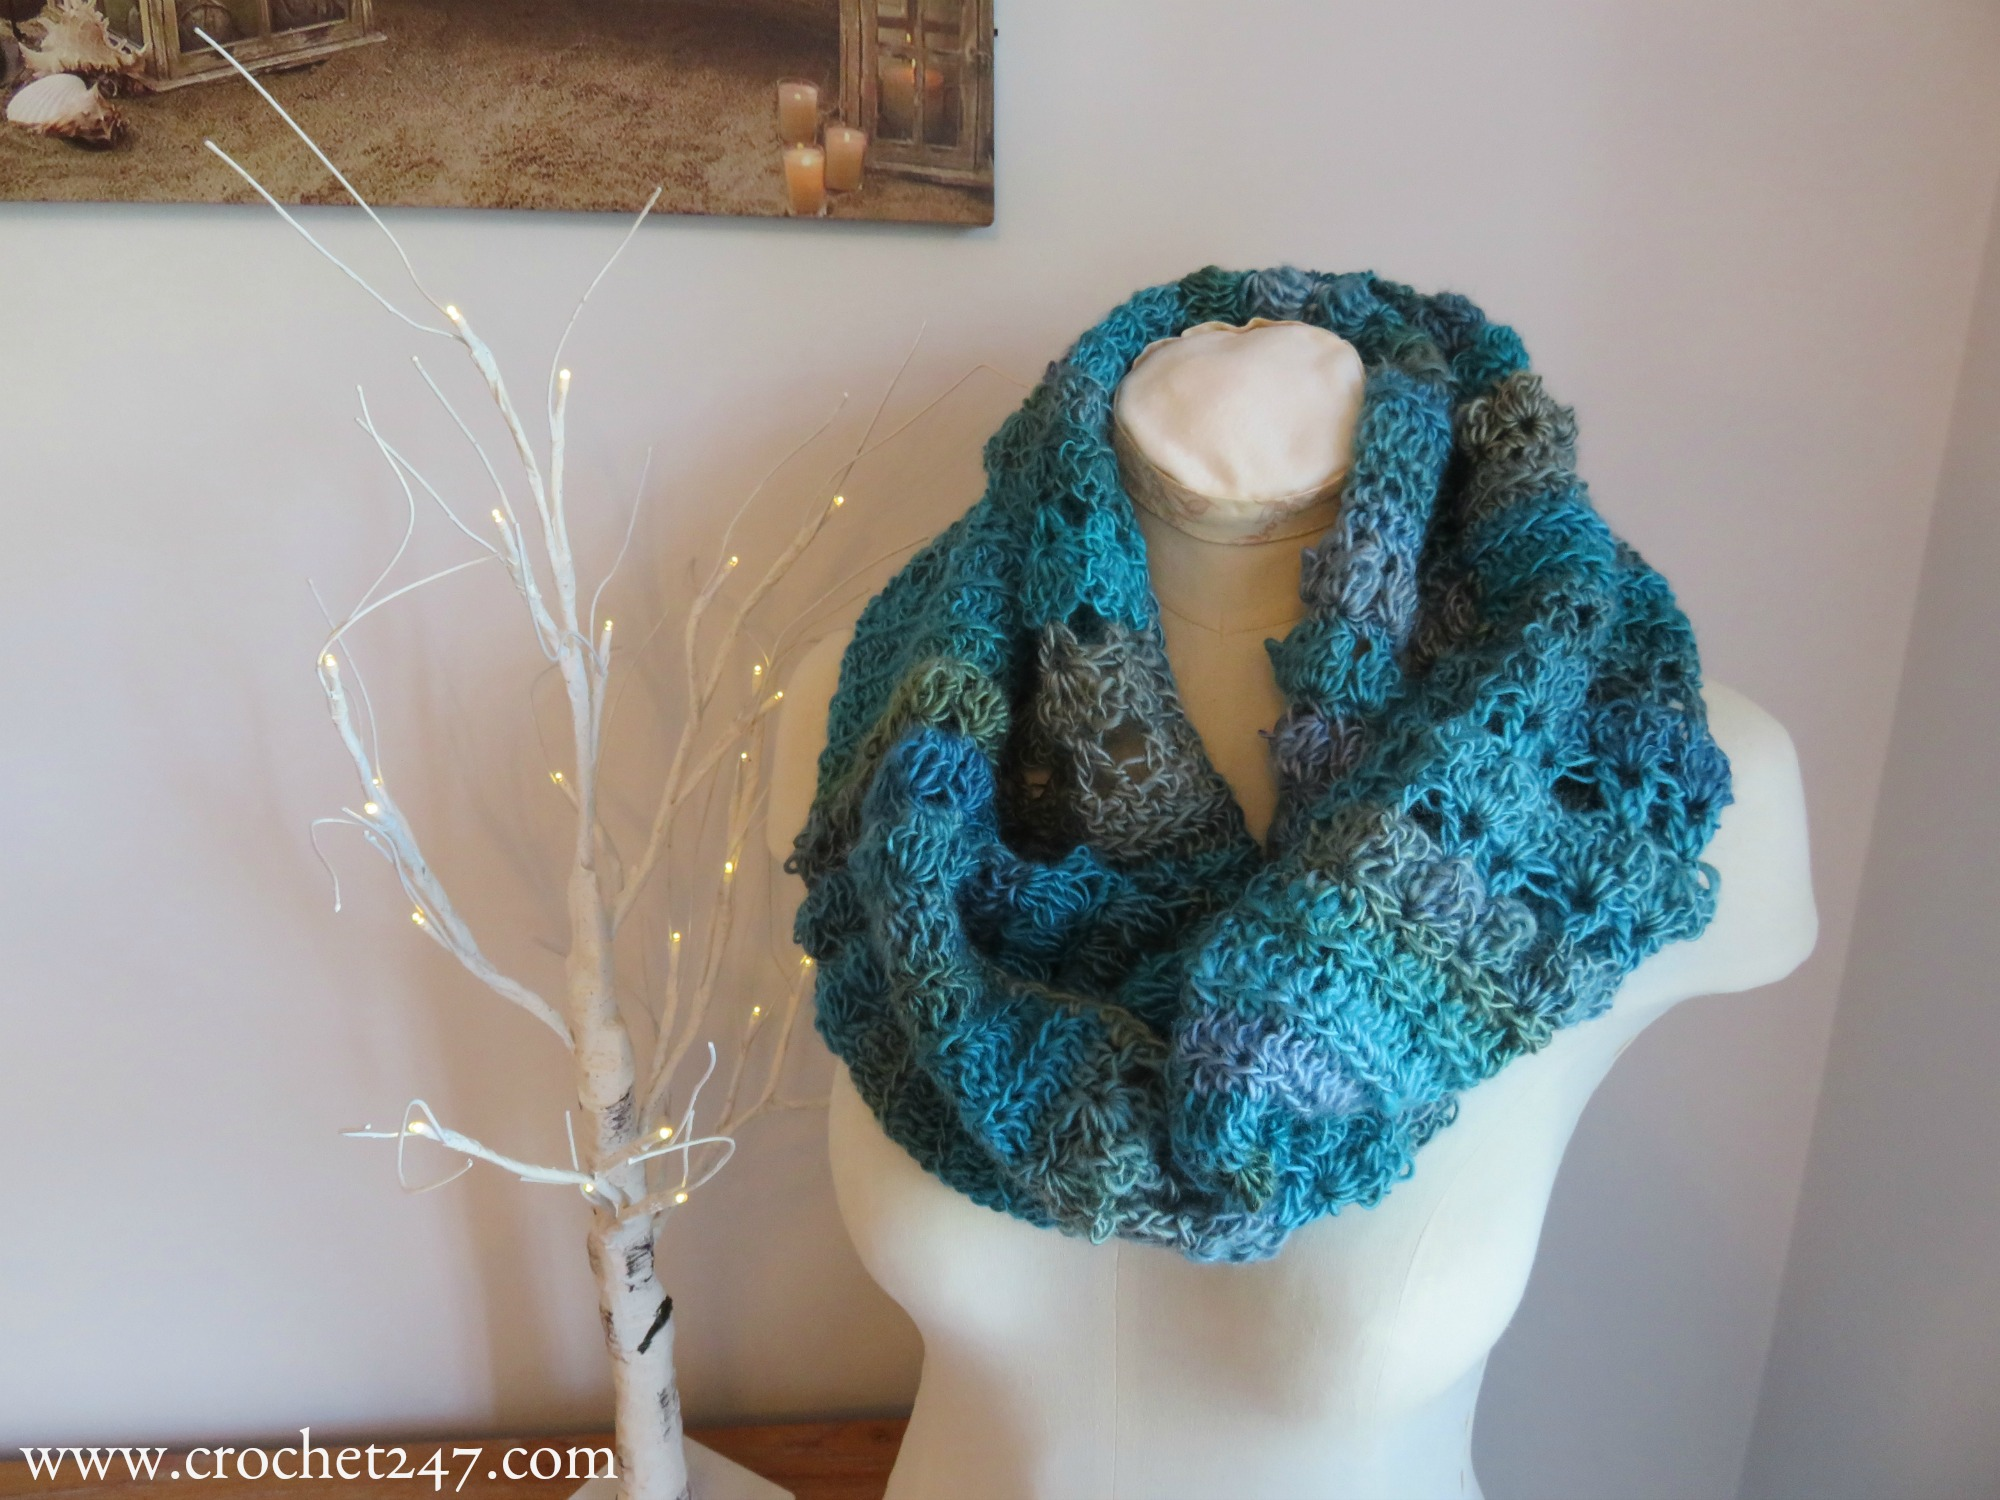 Unforgettable Hazel Cowl crochet pattern from Crochet247